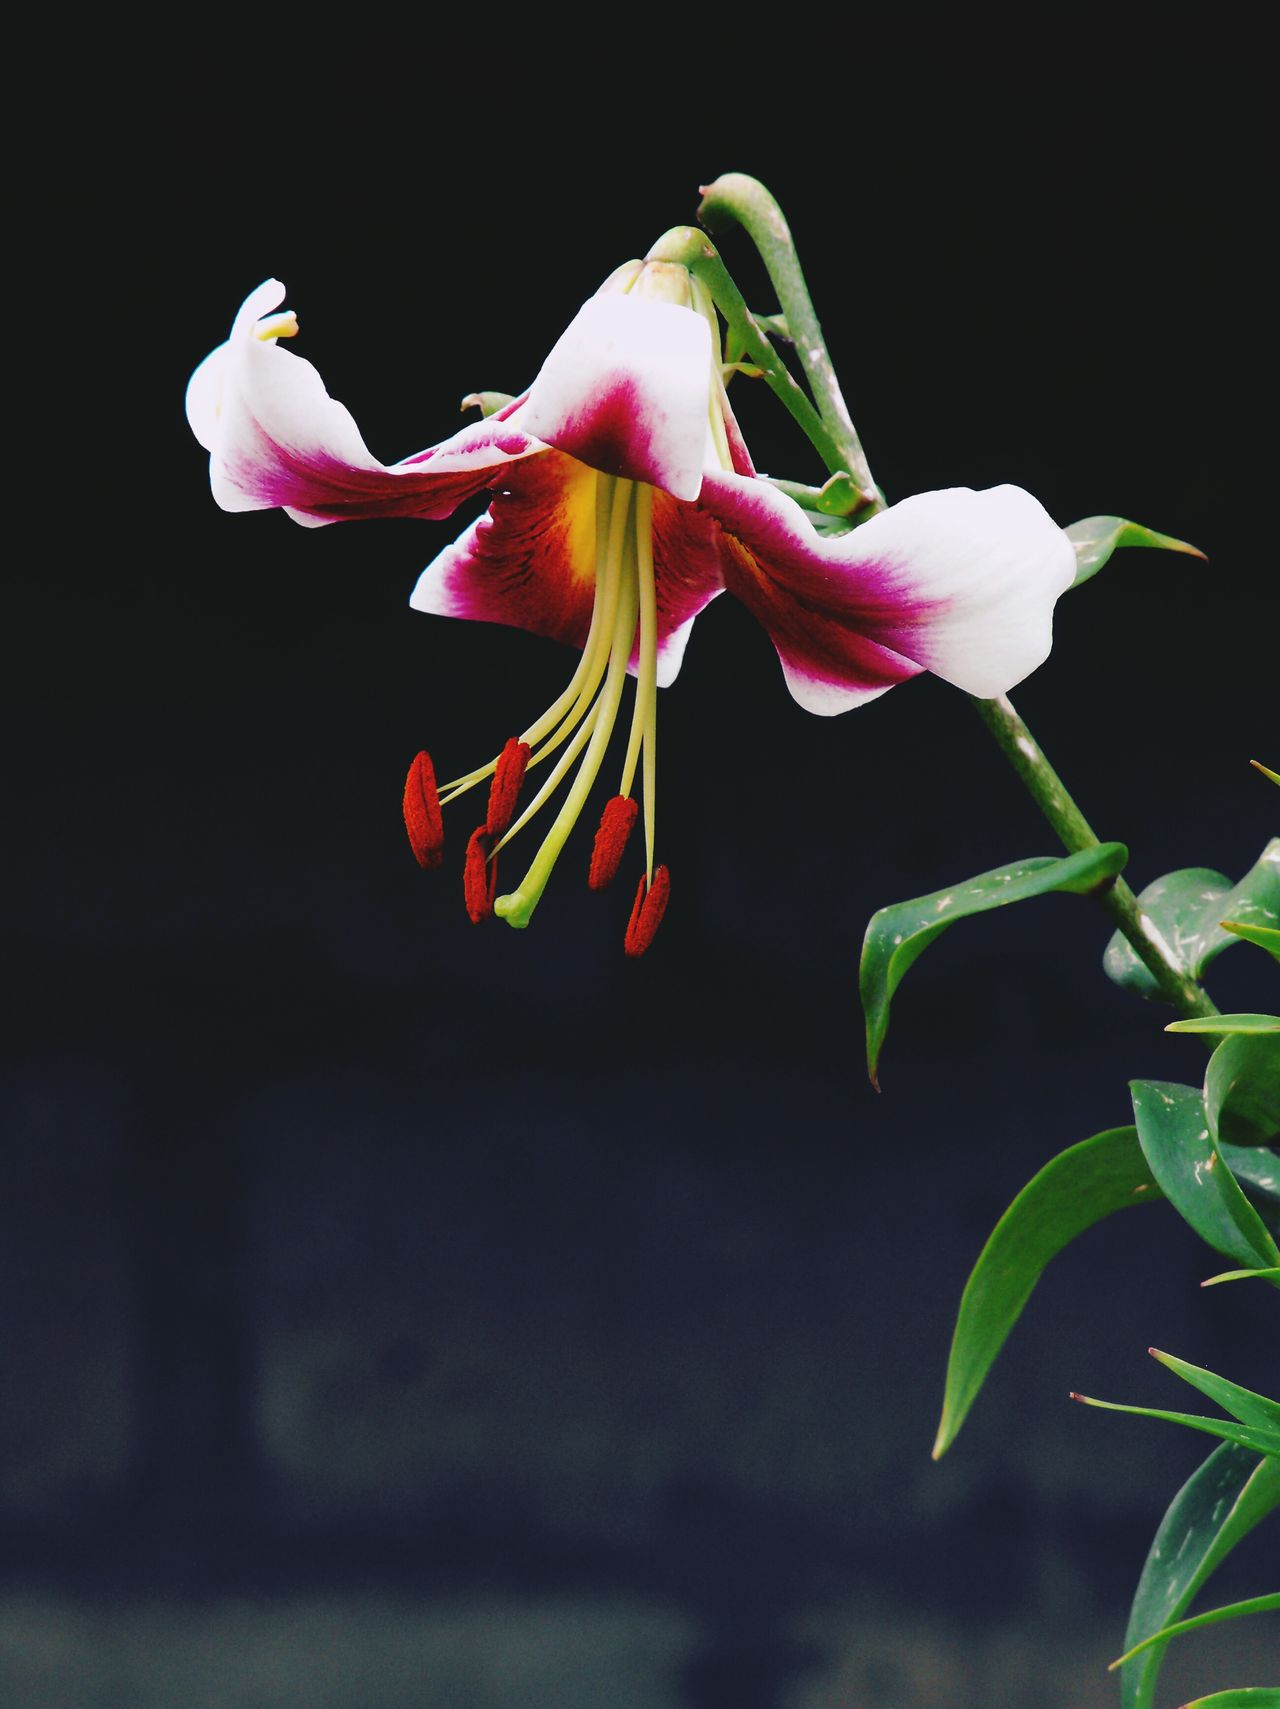 A lily in a garden by a brick wall, dark background Pink Color Black Background Close-up Full Length No People Nature Freshness Flower Head Day Lily Lilies Elégance Fragility Petals Summer Garden Pink Elegant Shadow Beauty In Nature Nature Floral Photography Floral